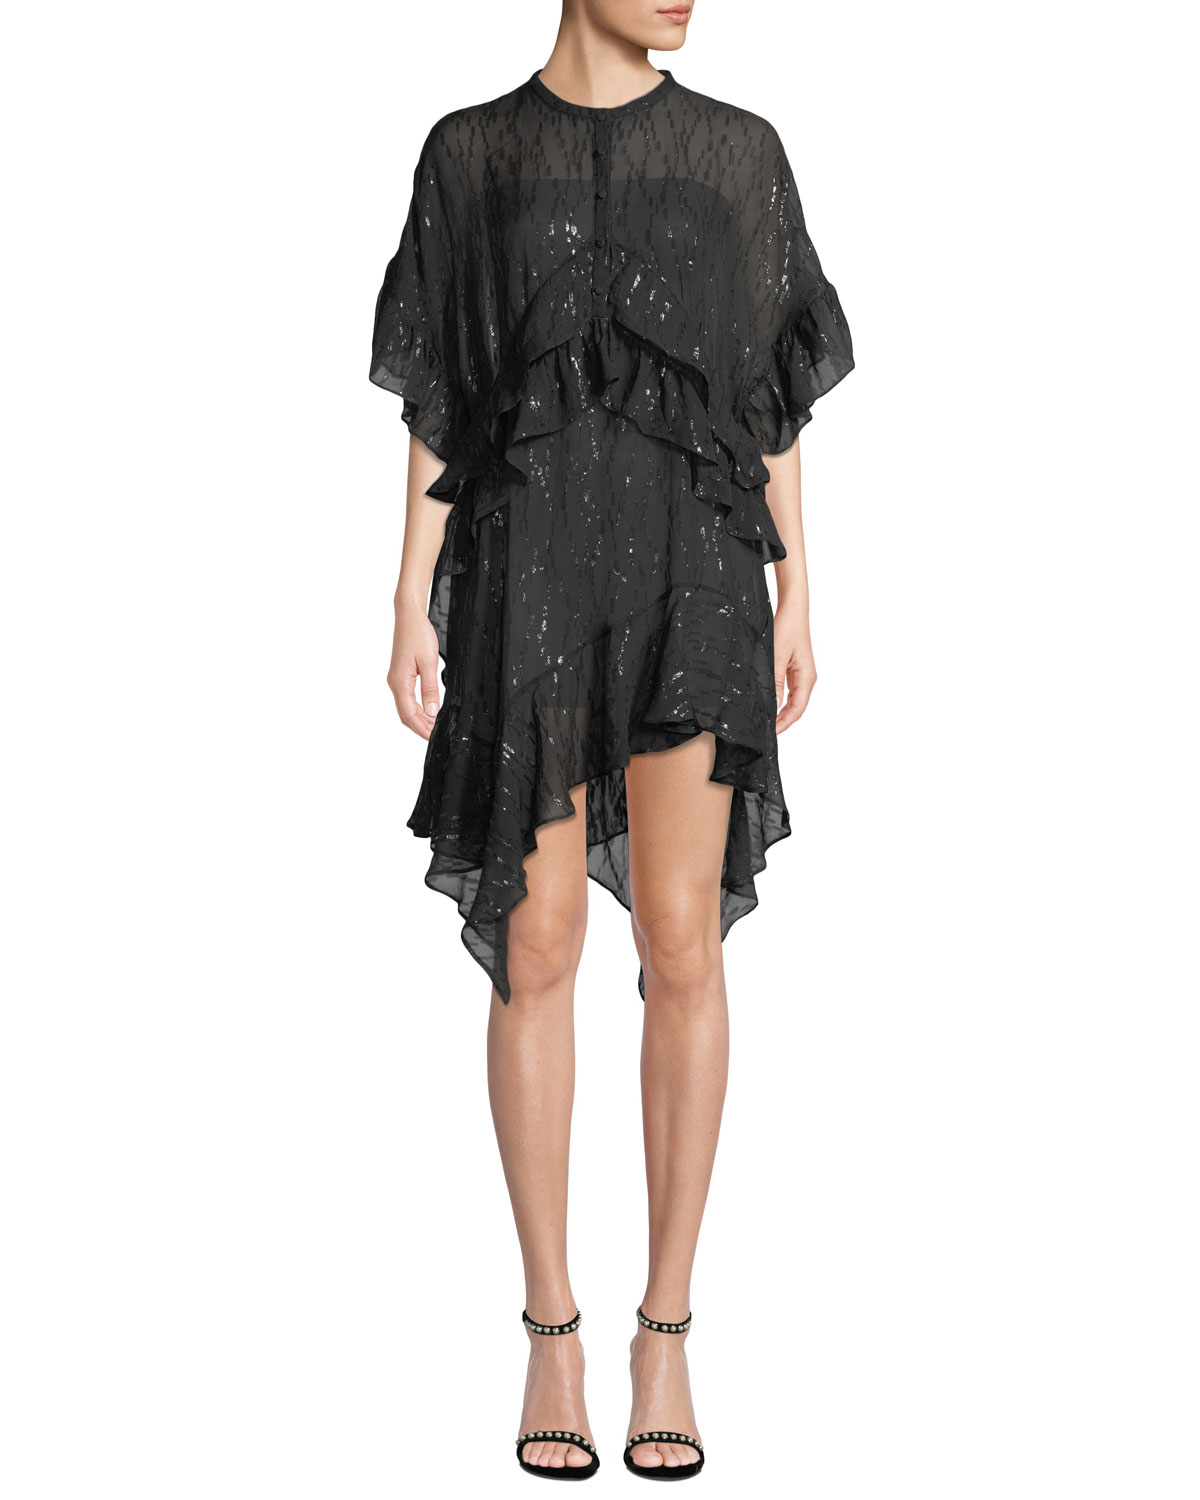 Iro Revolve Ruffle Metallic Asymmetric Dress Neiman Marcus Find revolve furnishings near you in canada cities, provinces and territories. revolve ruffle metallic asymmetric dress